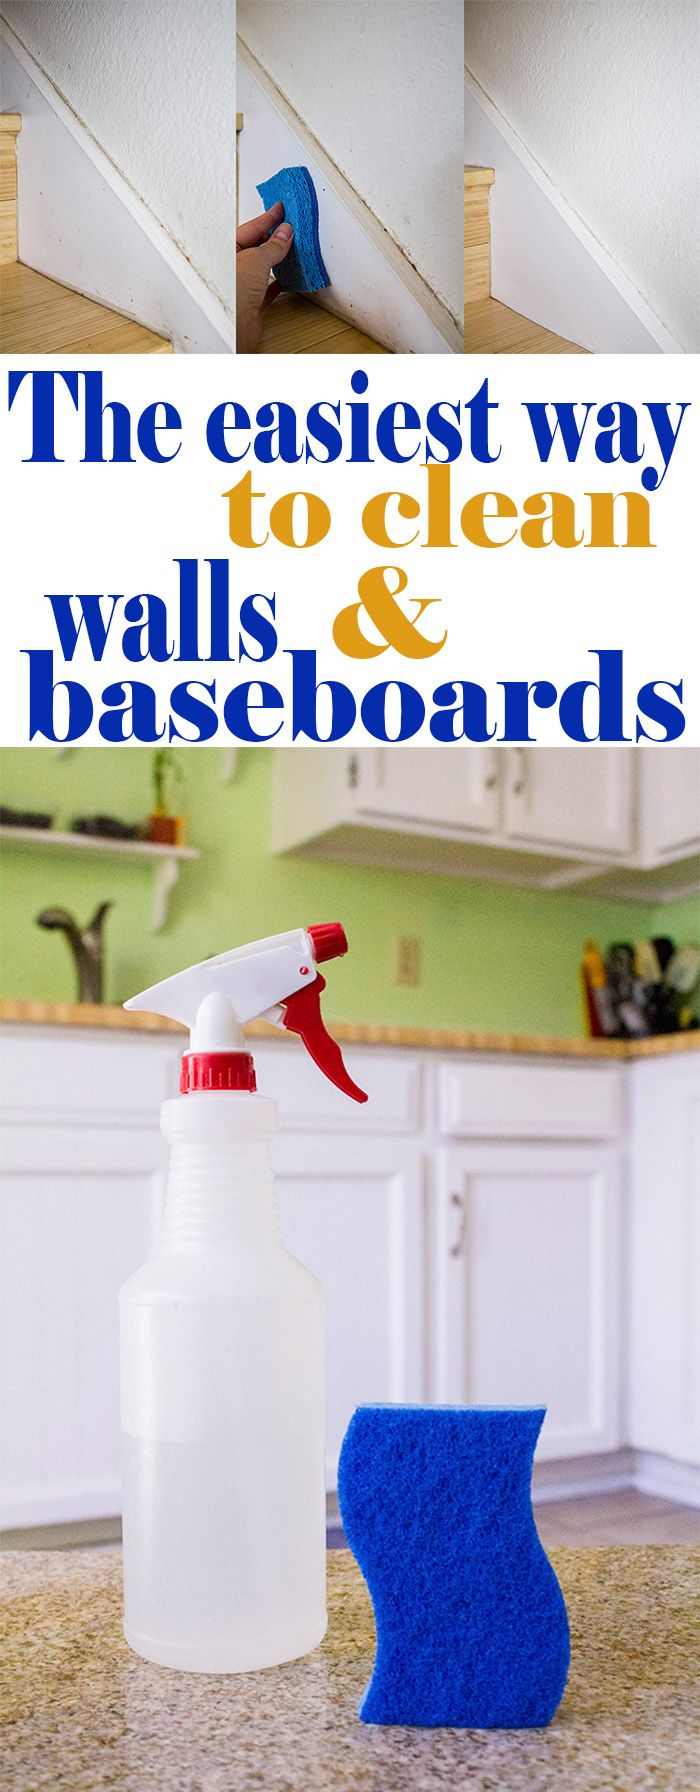 A recipe for a non-toxic homemade wall cleaner, and a tutorial for the easiest way to clean walls and baseboards. Don't forget to grab a coupon, too!